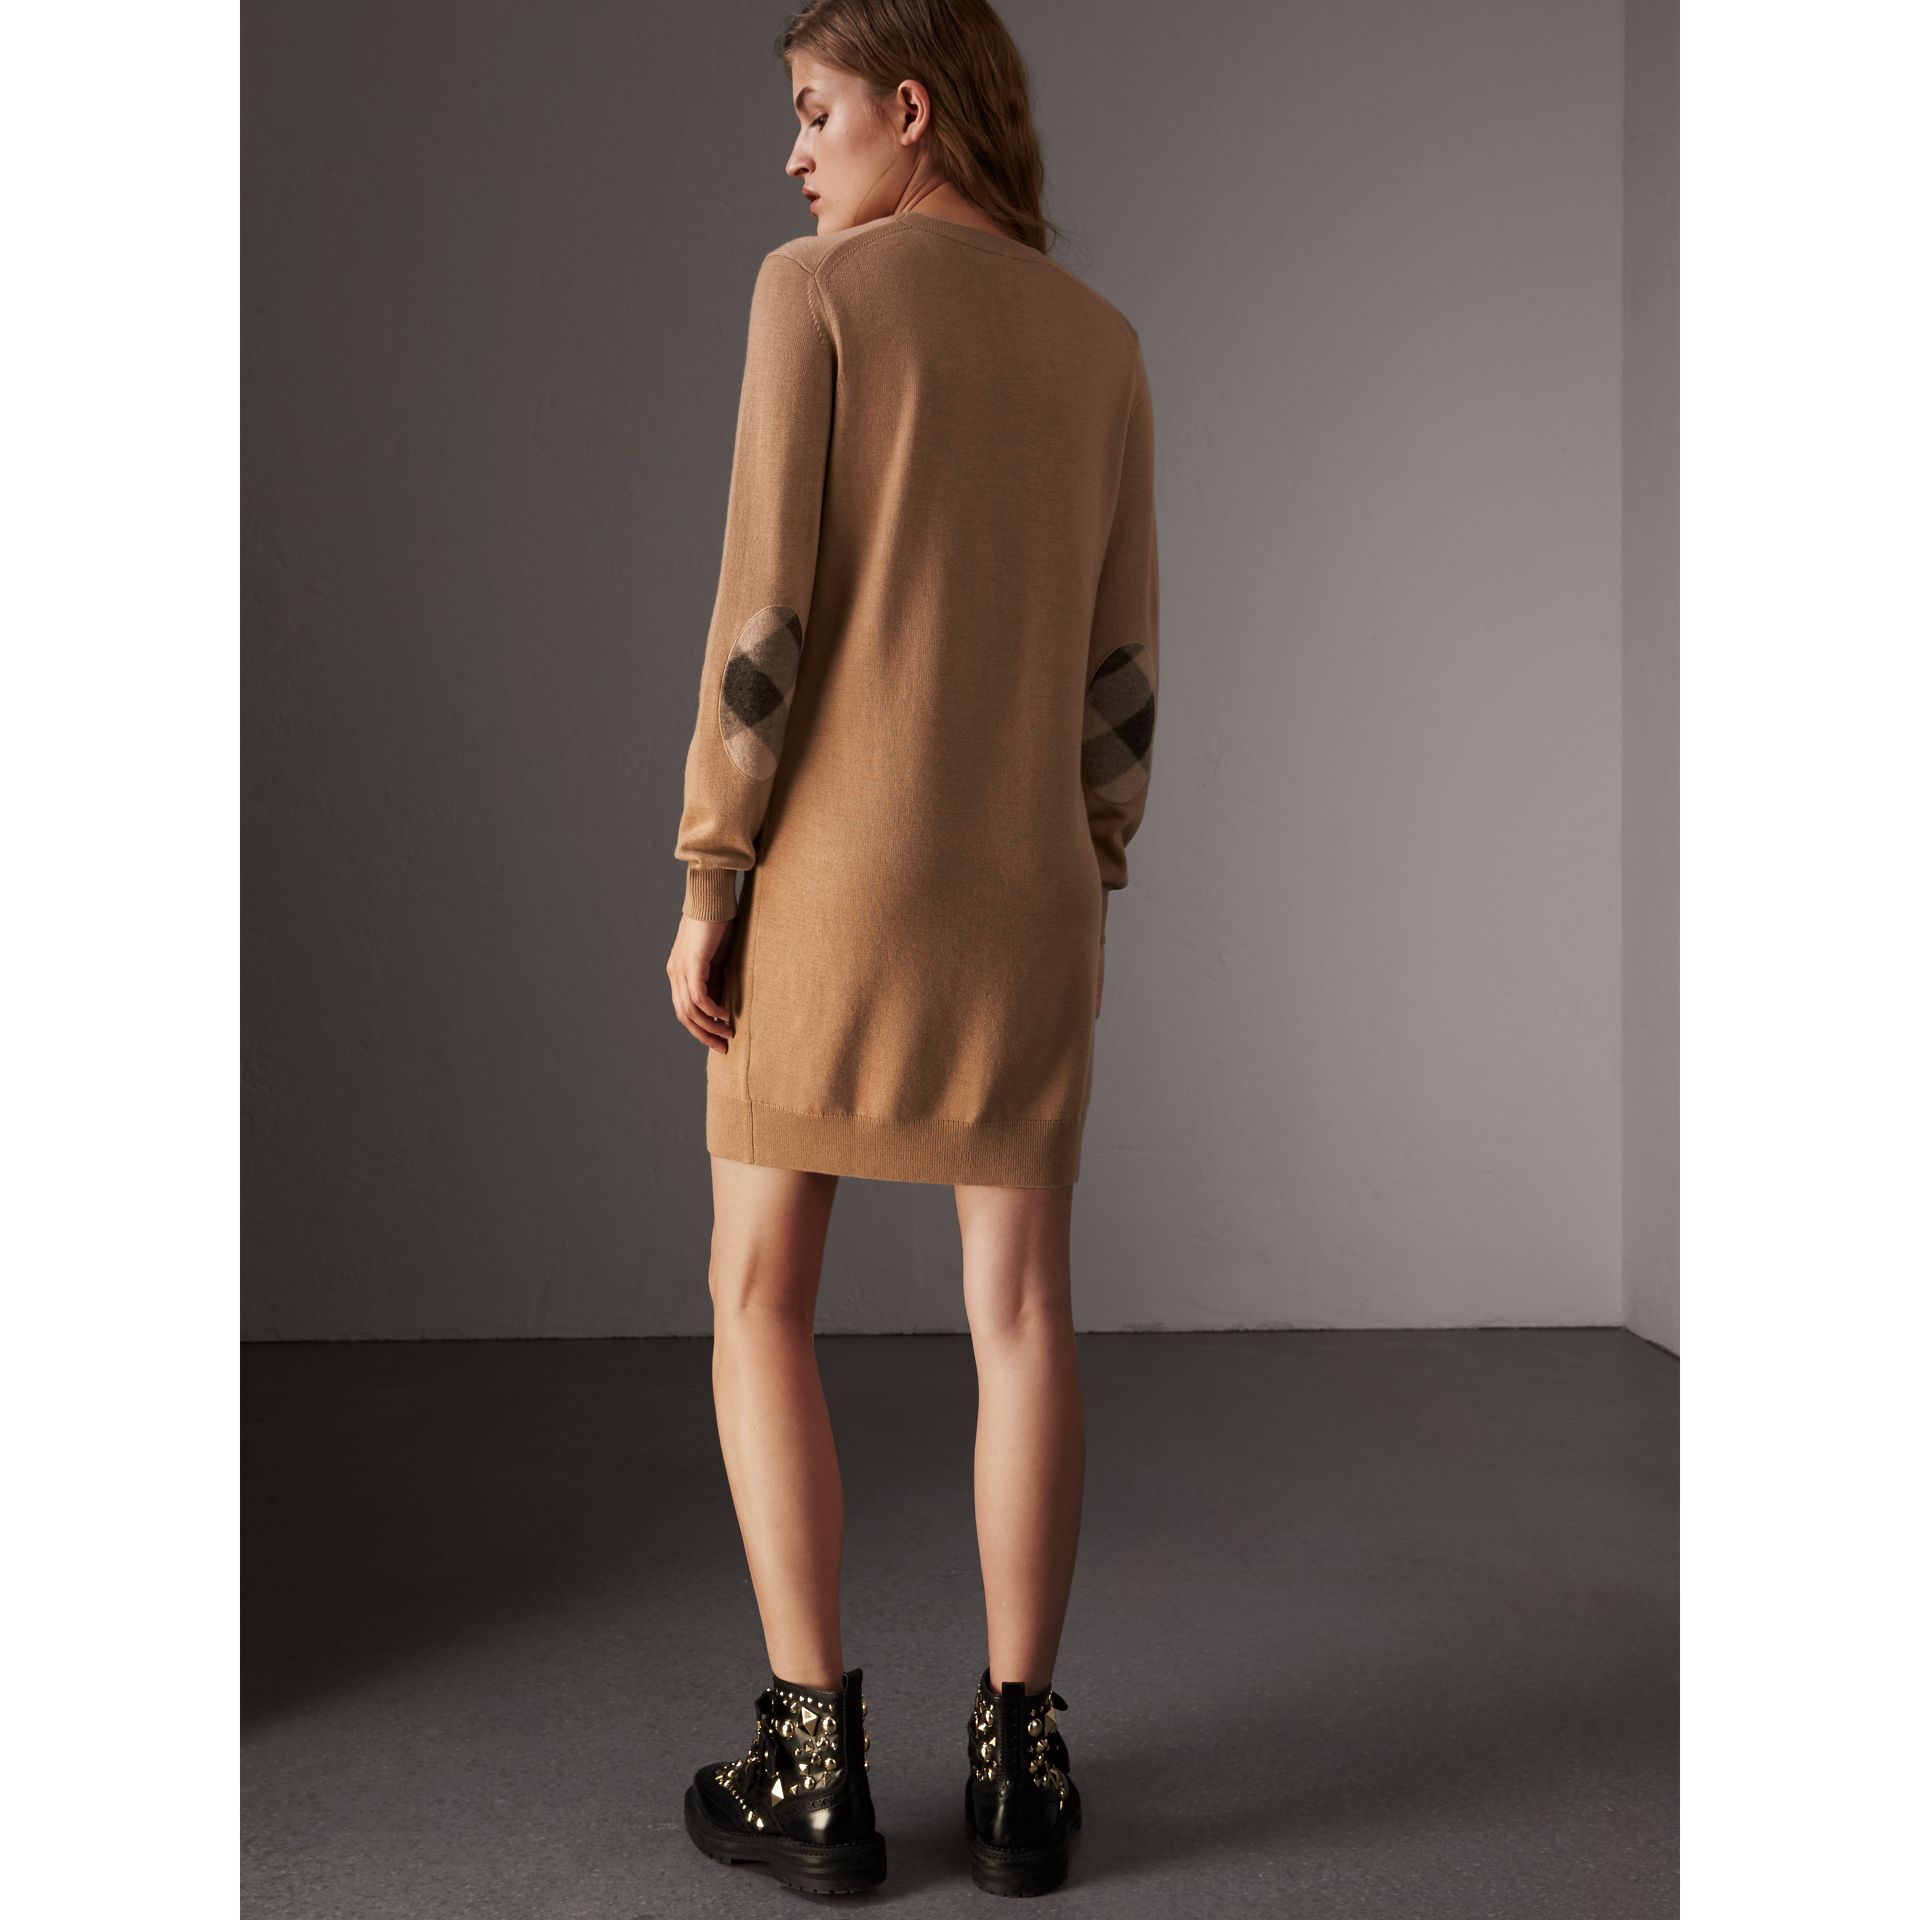 Check Elbow Detail Merino Wool Sweater Dress in Camel - Women | Burberry Canada - gallery image 2